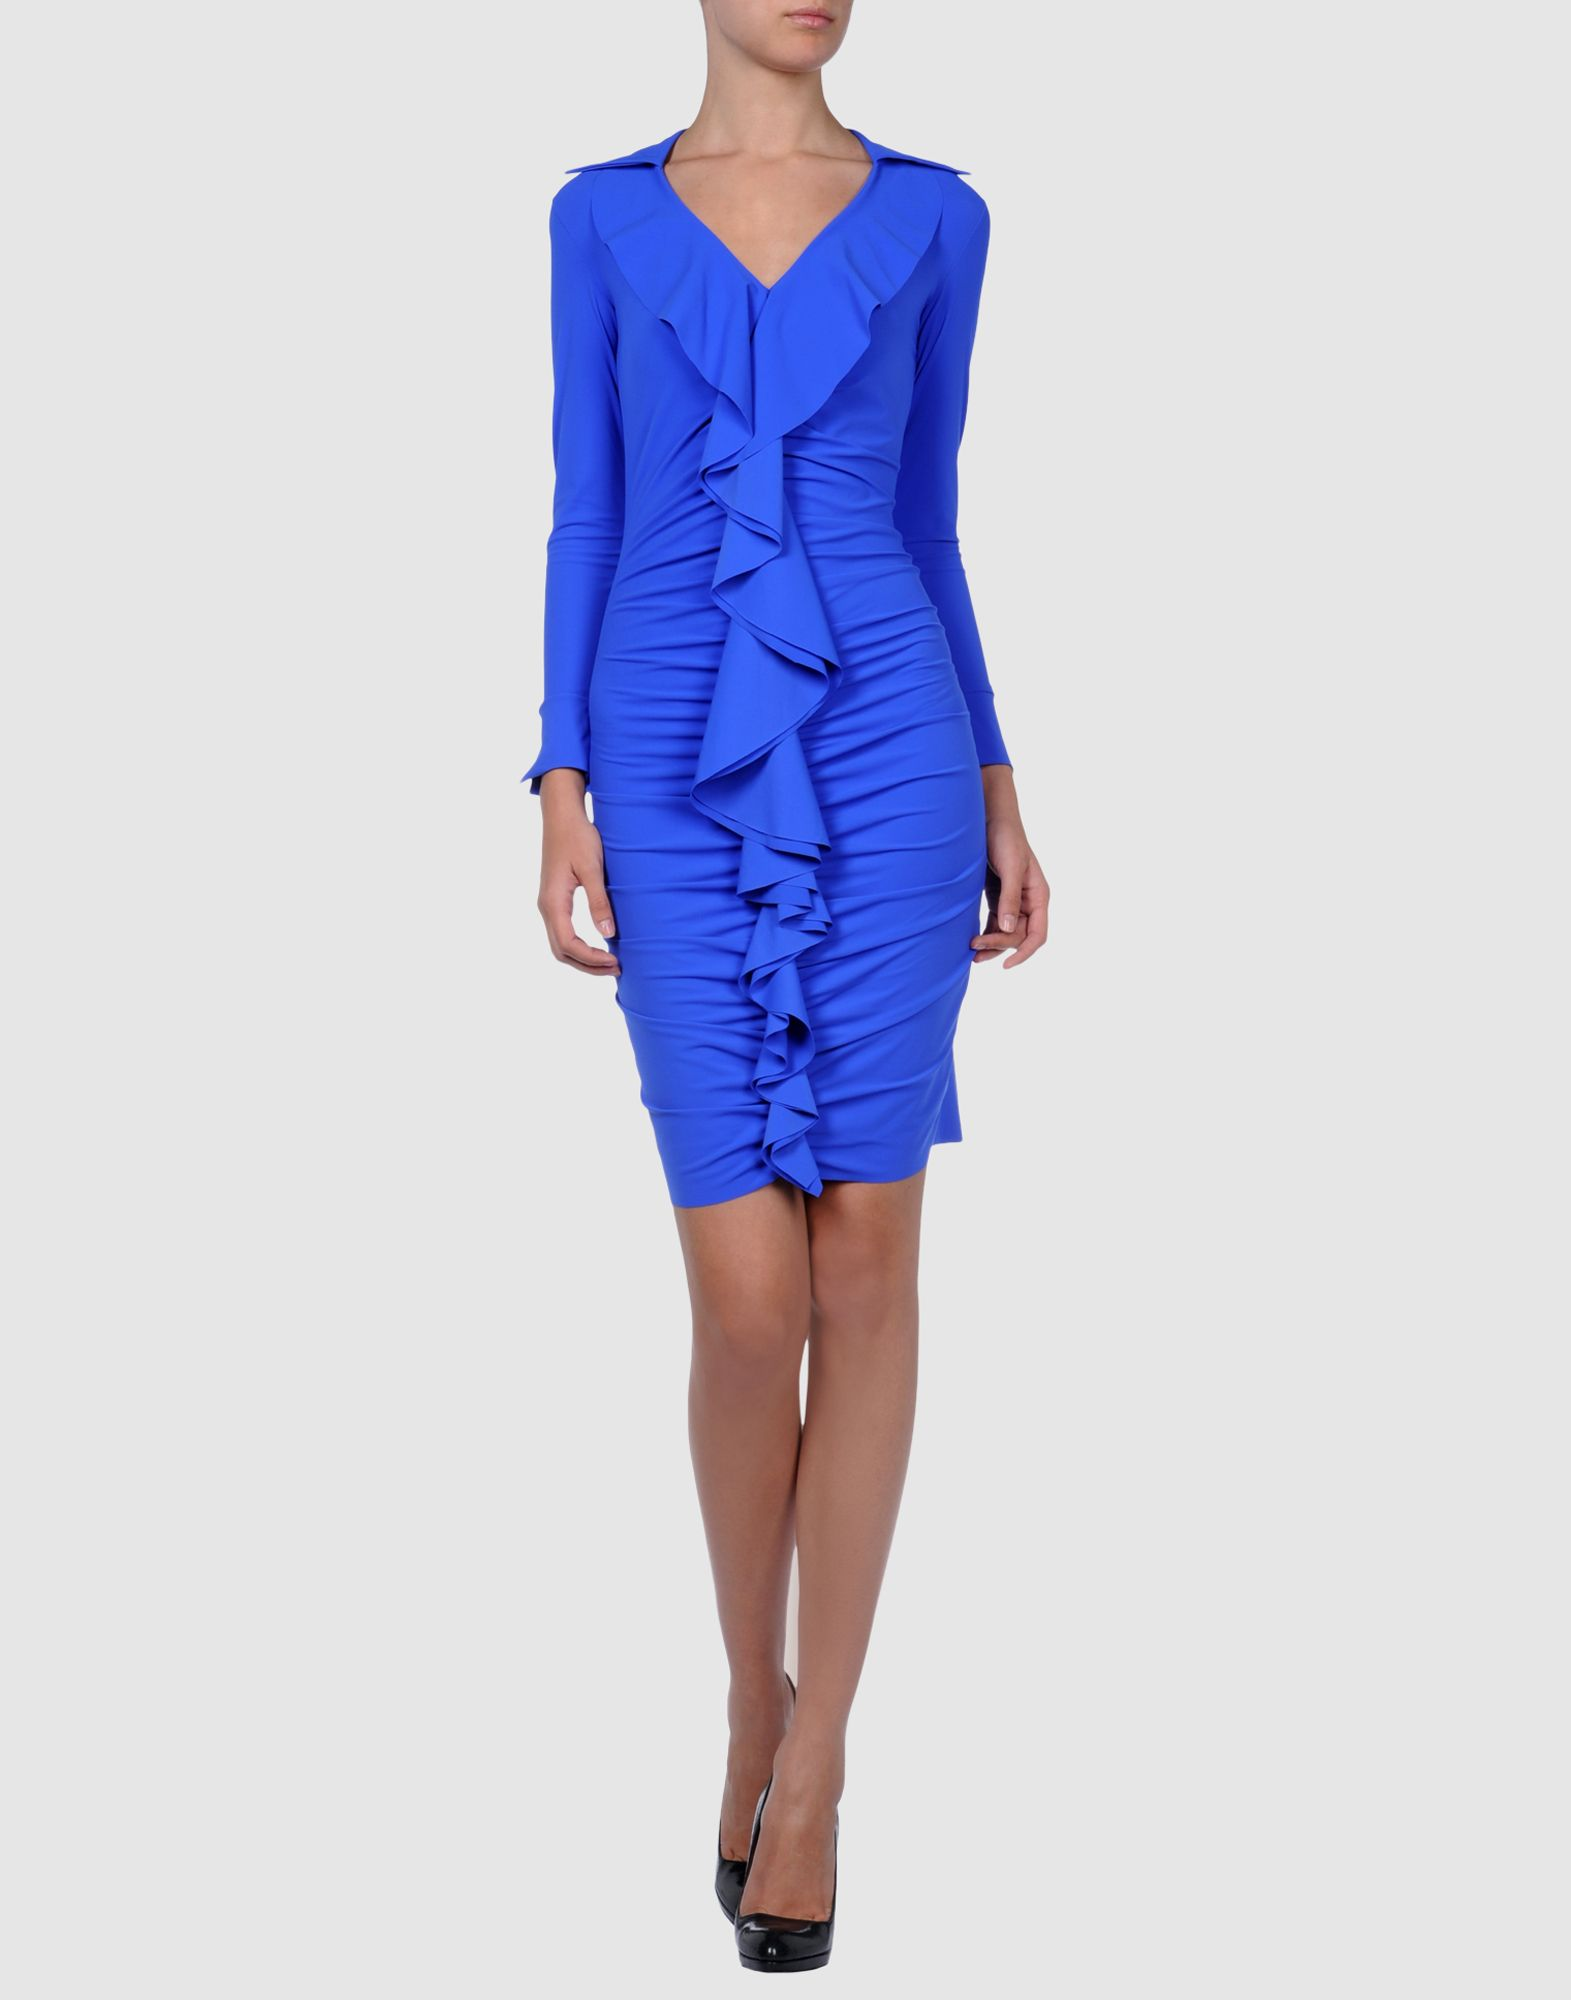 Chiara Boni The Most Popular Dress In America: La Petite Robe Di Chiara Boni Short Dresses In Blue